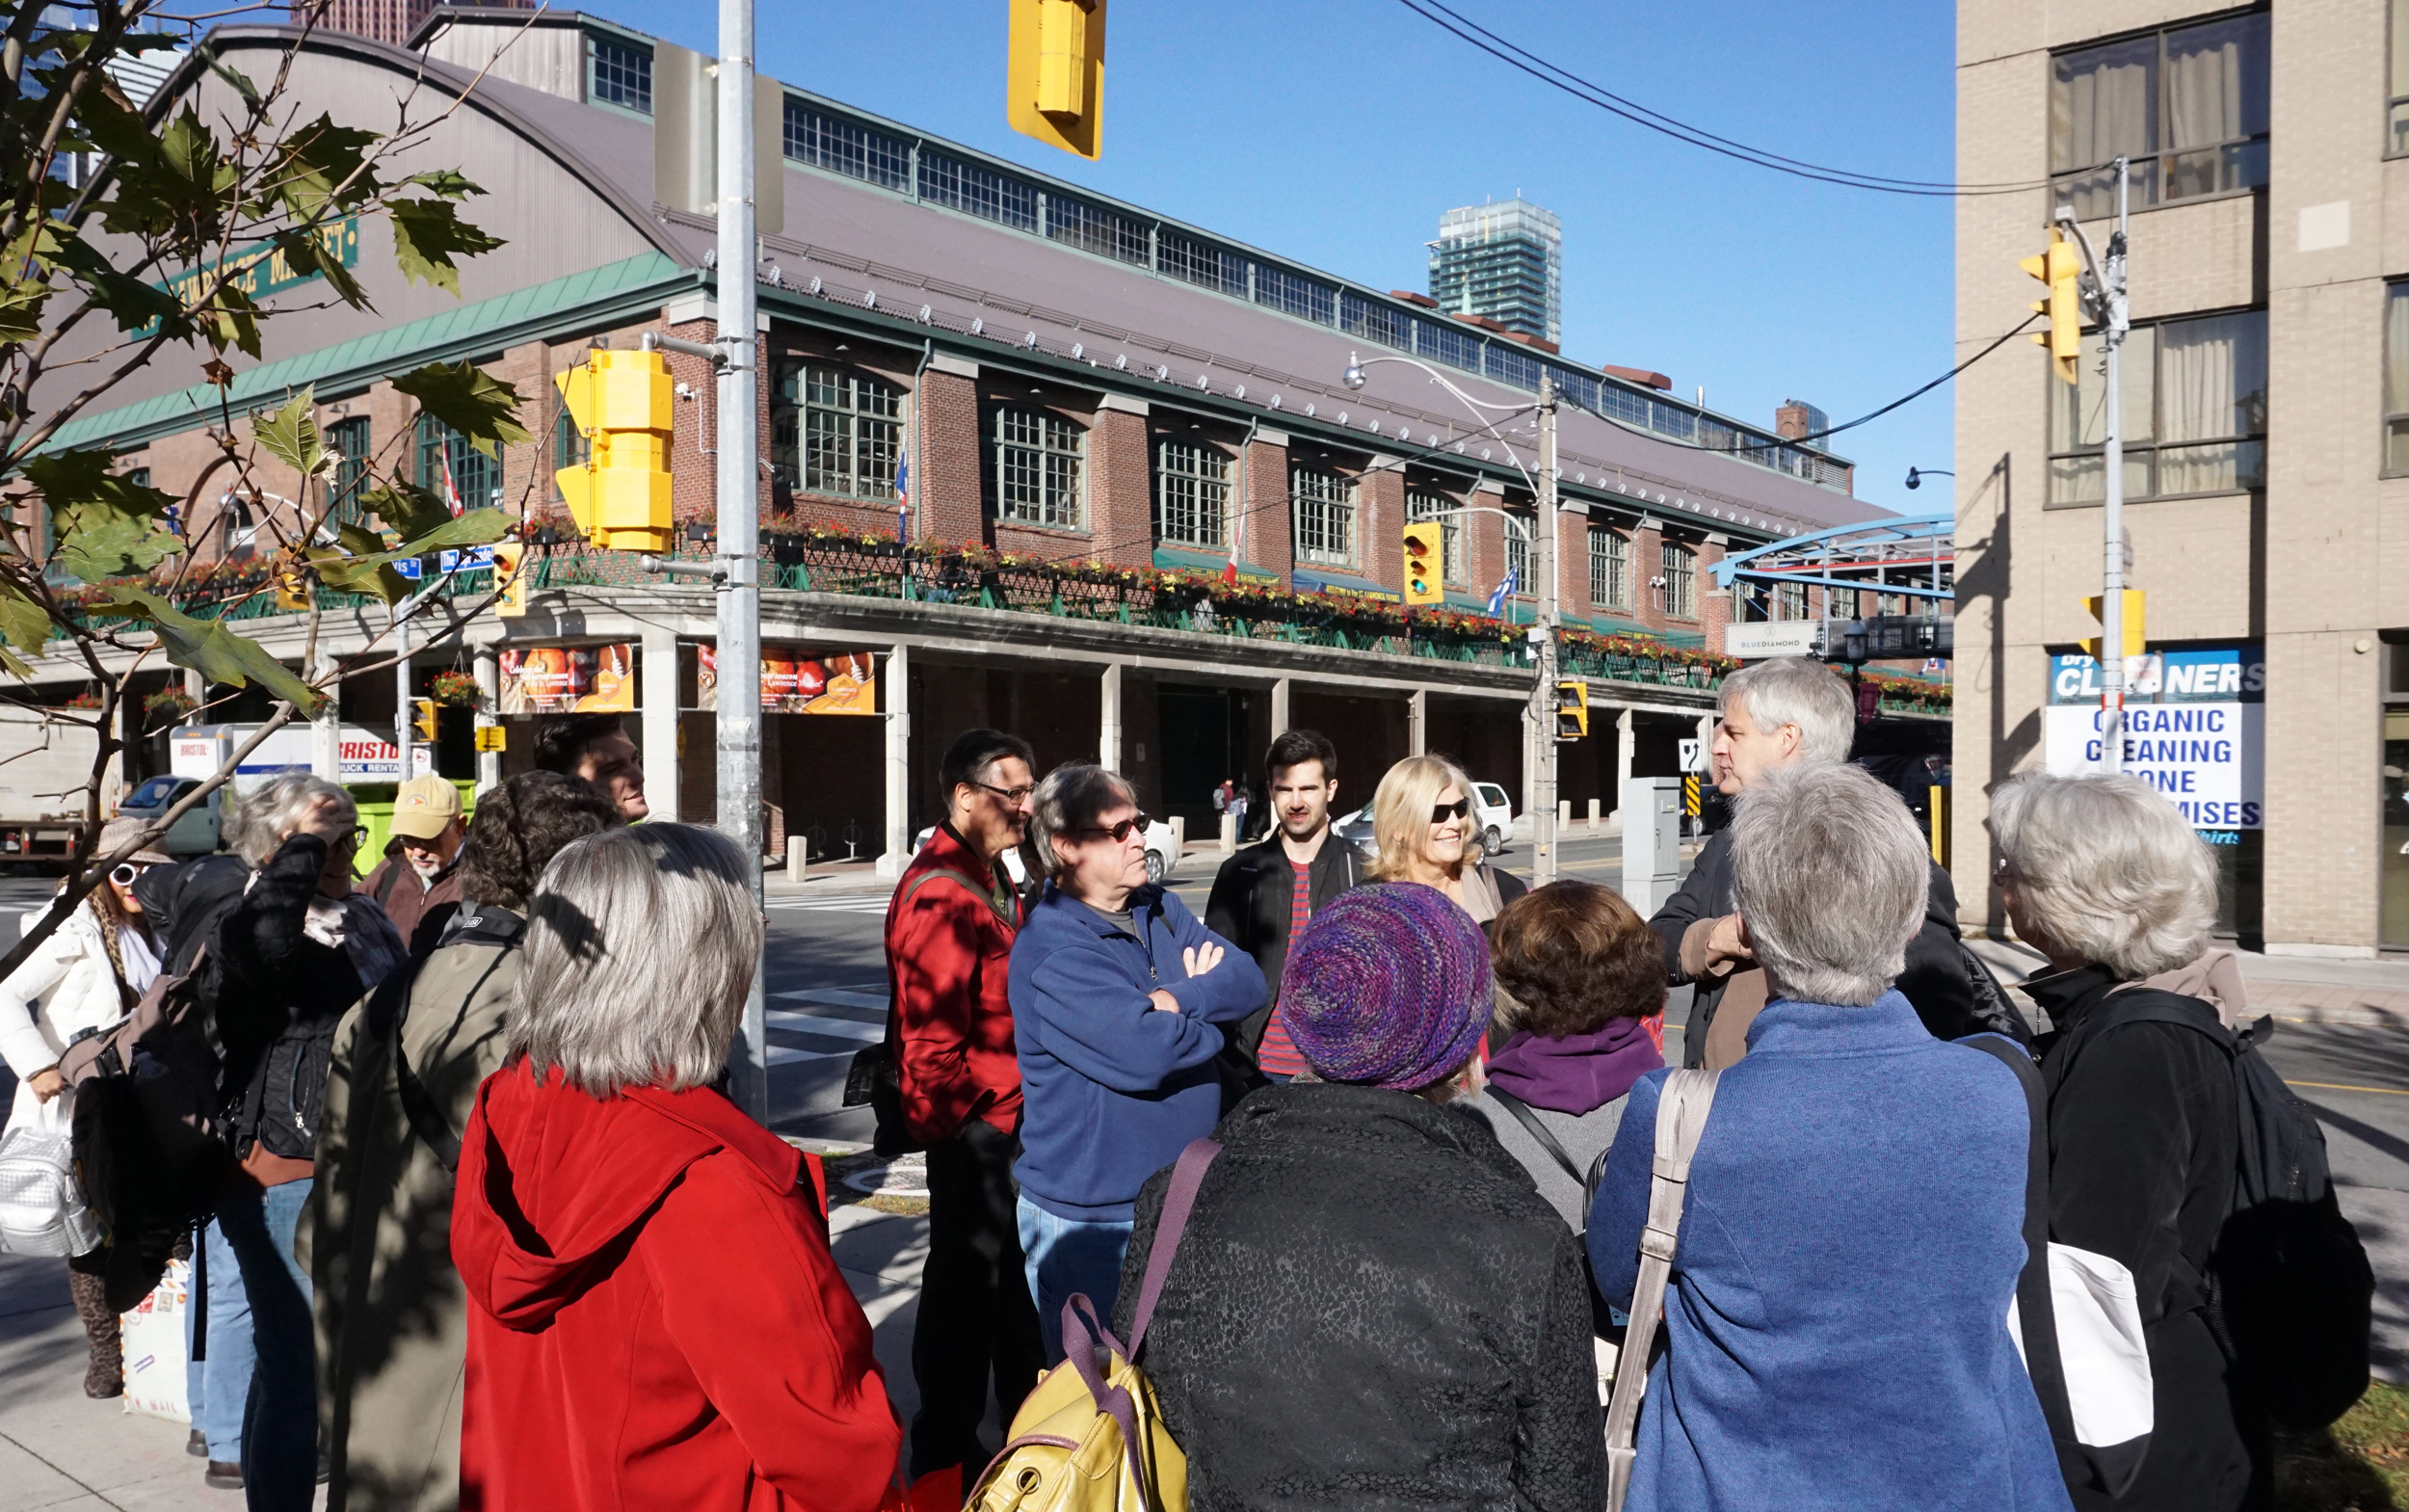 Current ASAI President and multiple illustration award winner Jon Soules leads a richly narrated sketching tour of historic Toronto, starting at St. Lawrence Market and stopping over at the Distillery District before finishing at Fort York. Undeterred by the brisk weather, the group of mostly first-time visitors captured not only buildings and streetscapes, but all manner of urban ephemera.